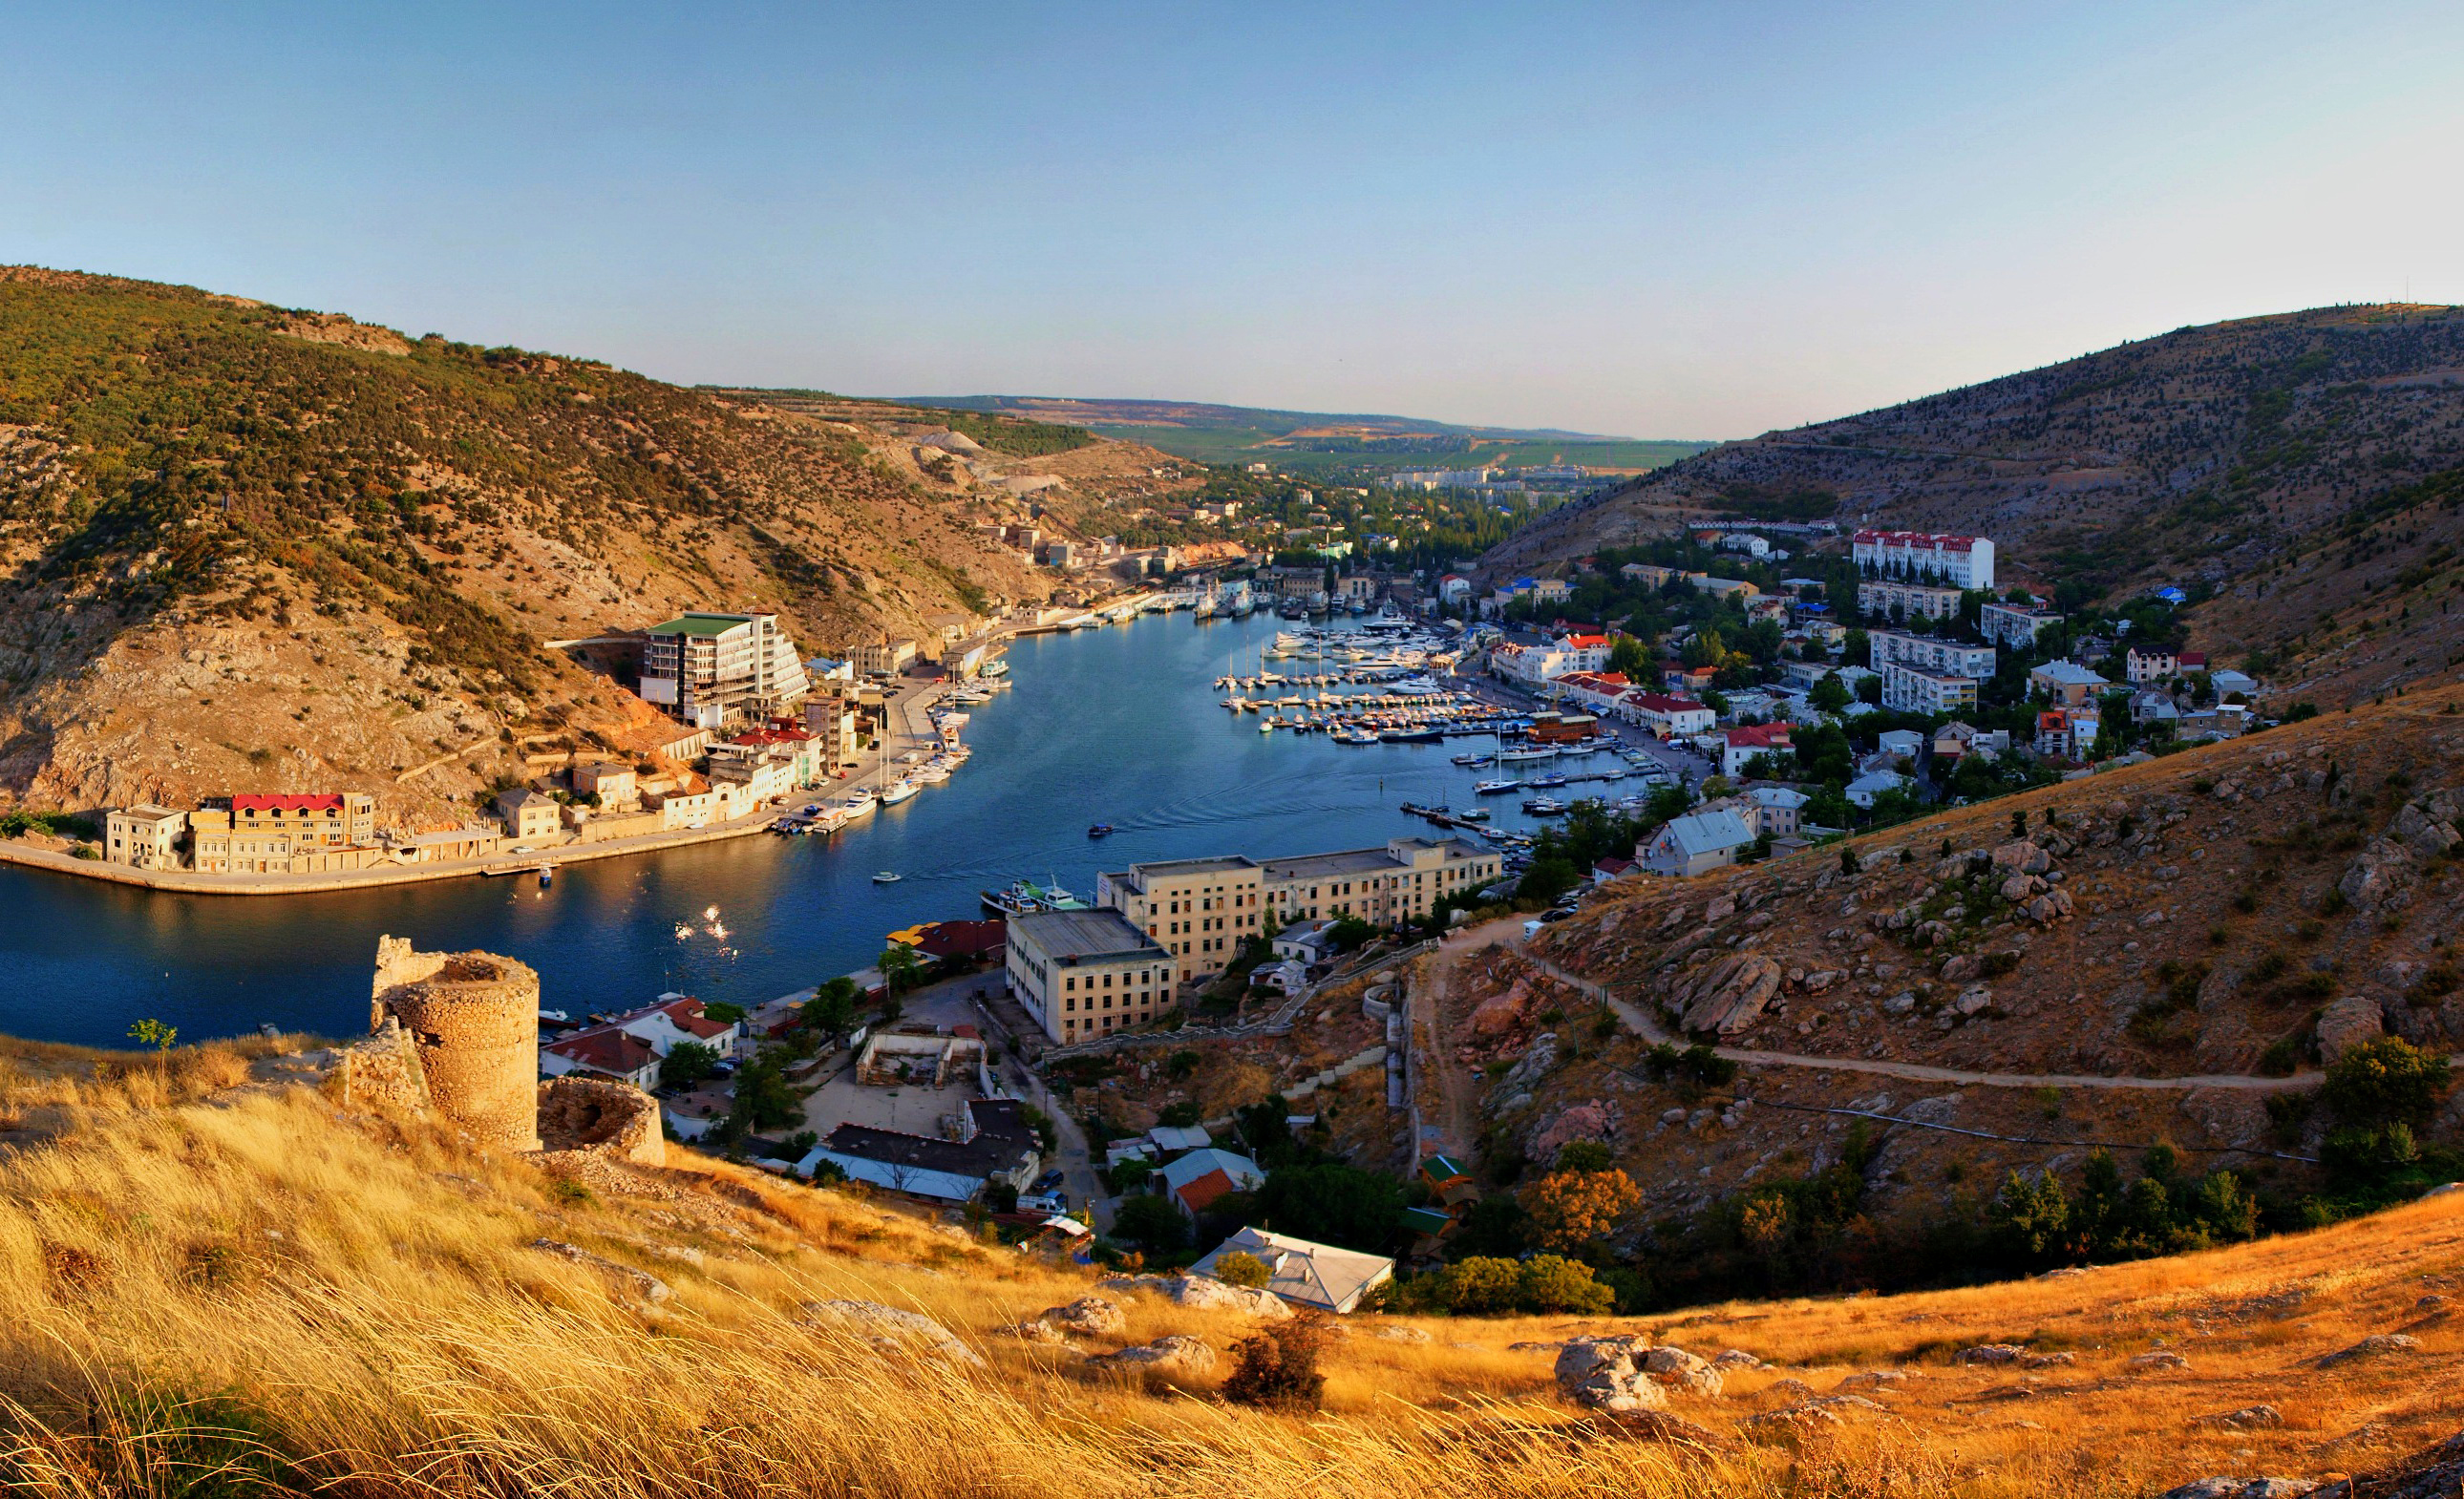 80708 download wallpaper Nature, Crimea, Balaclava, Rivers, Boats, Mountains screensavers and pictures for free